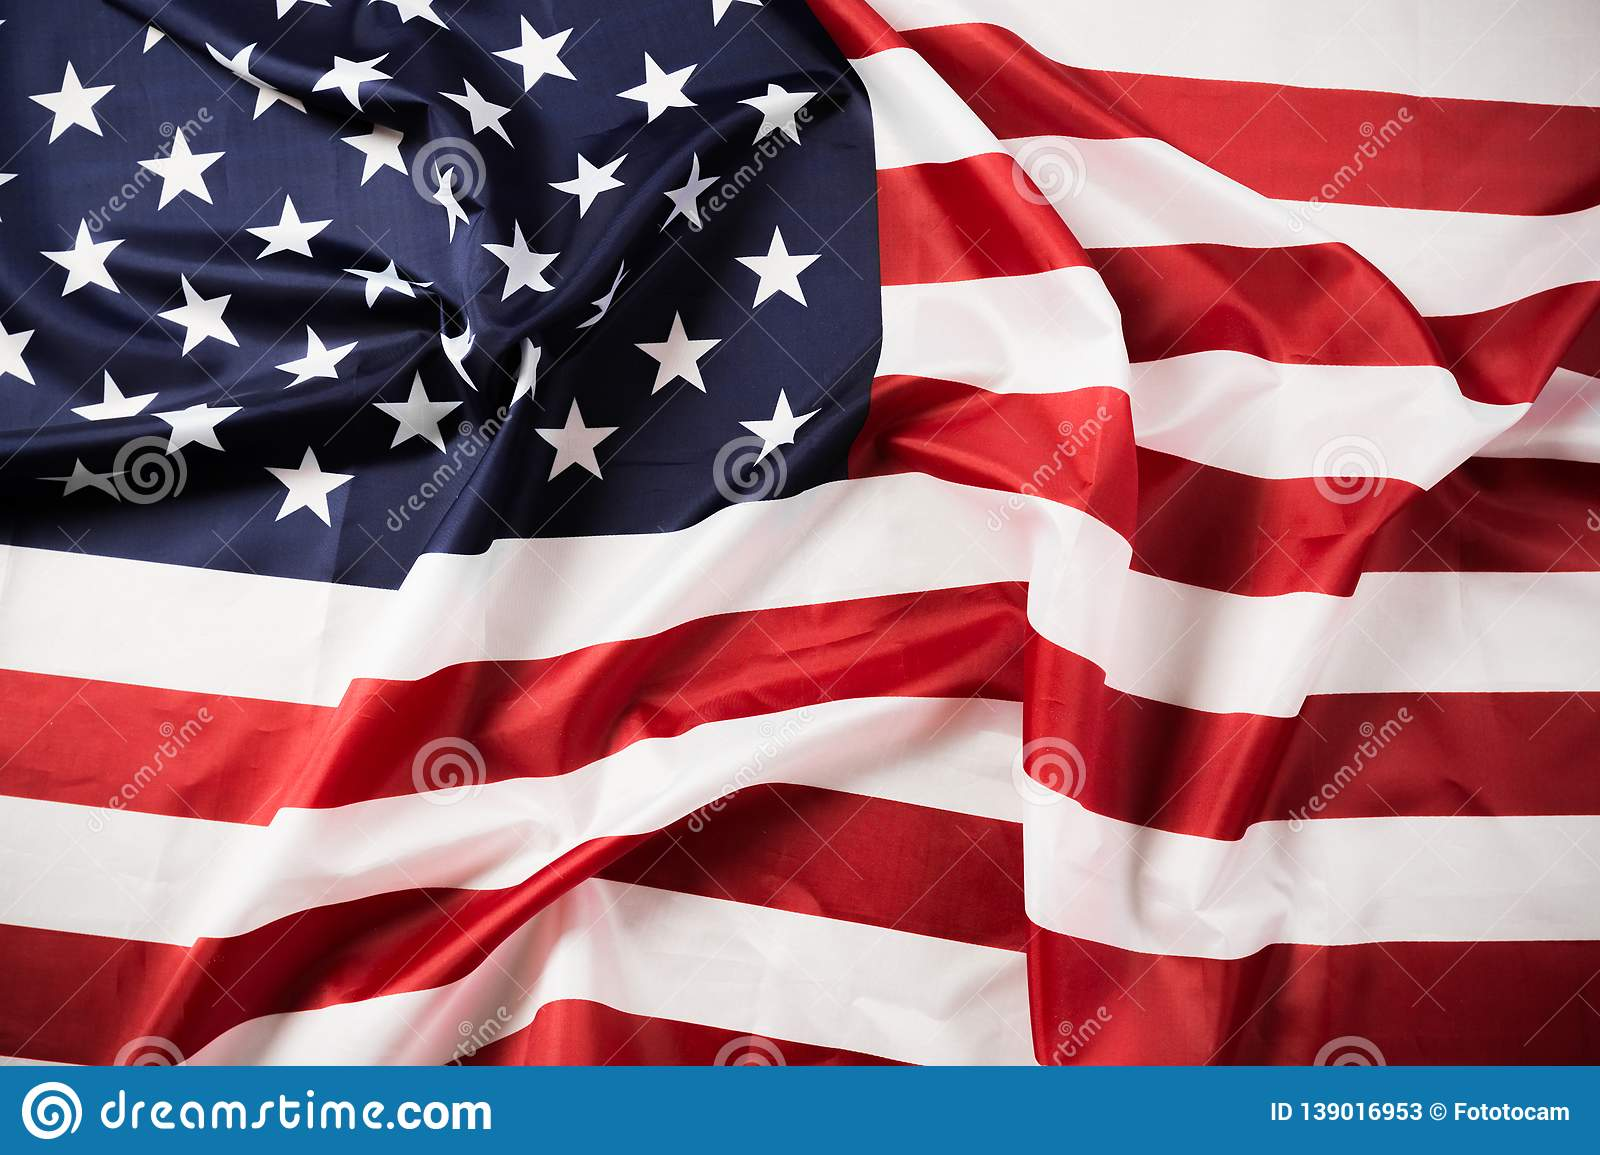 American Flag Waving Background  Independence Day, Memorial